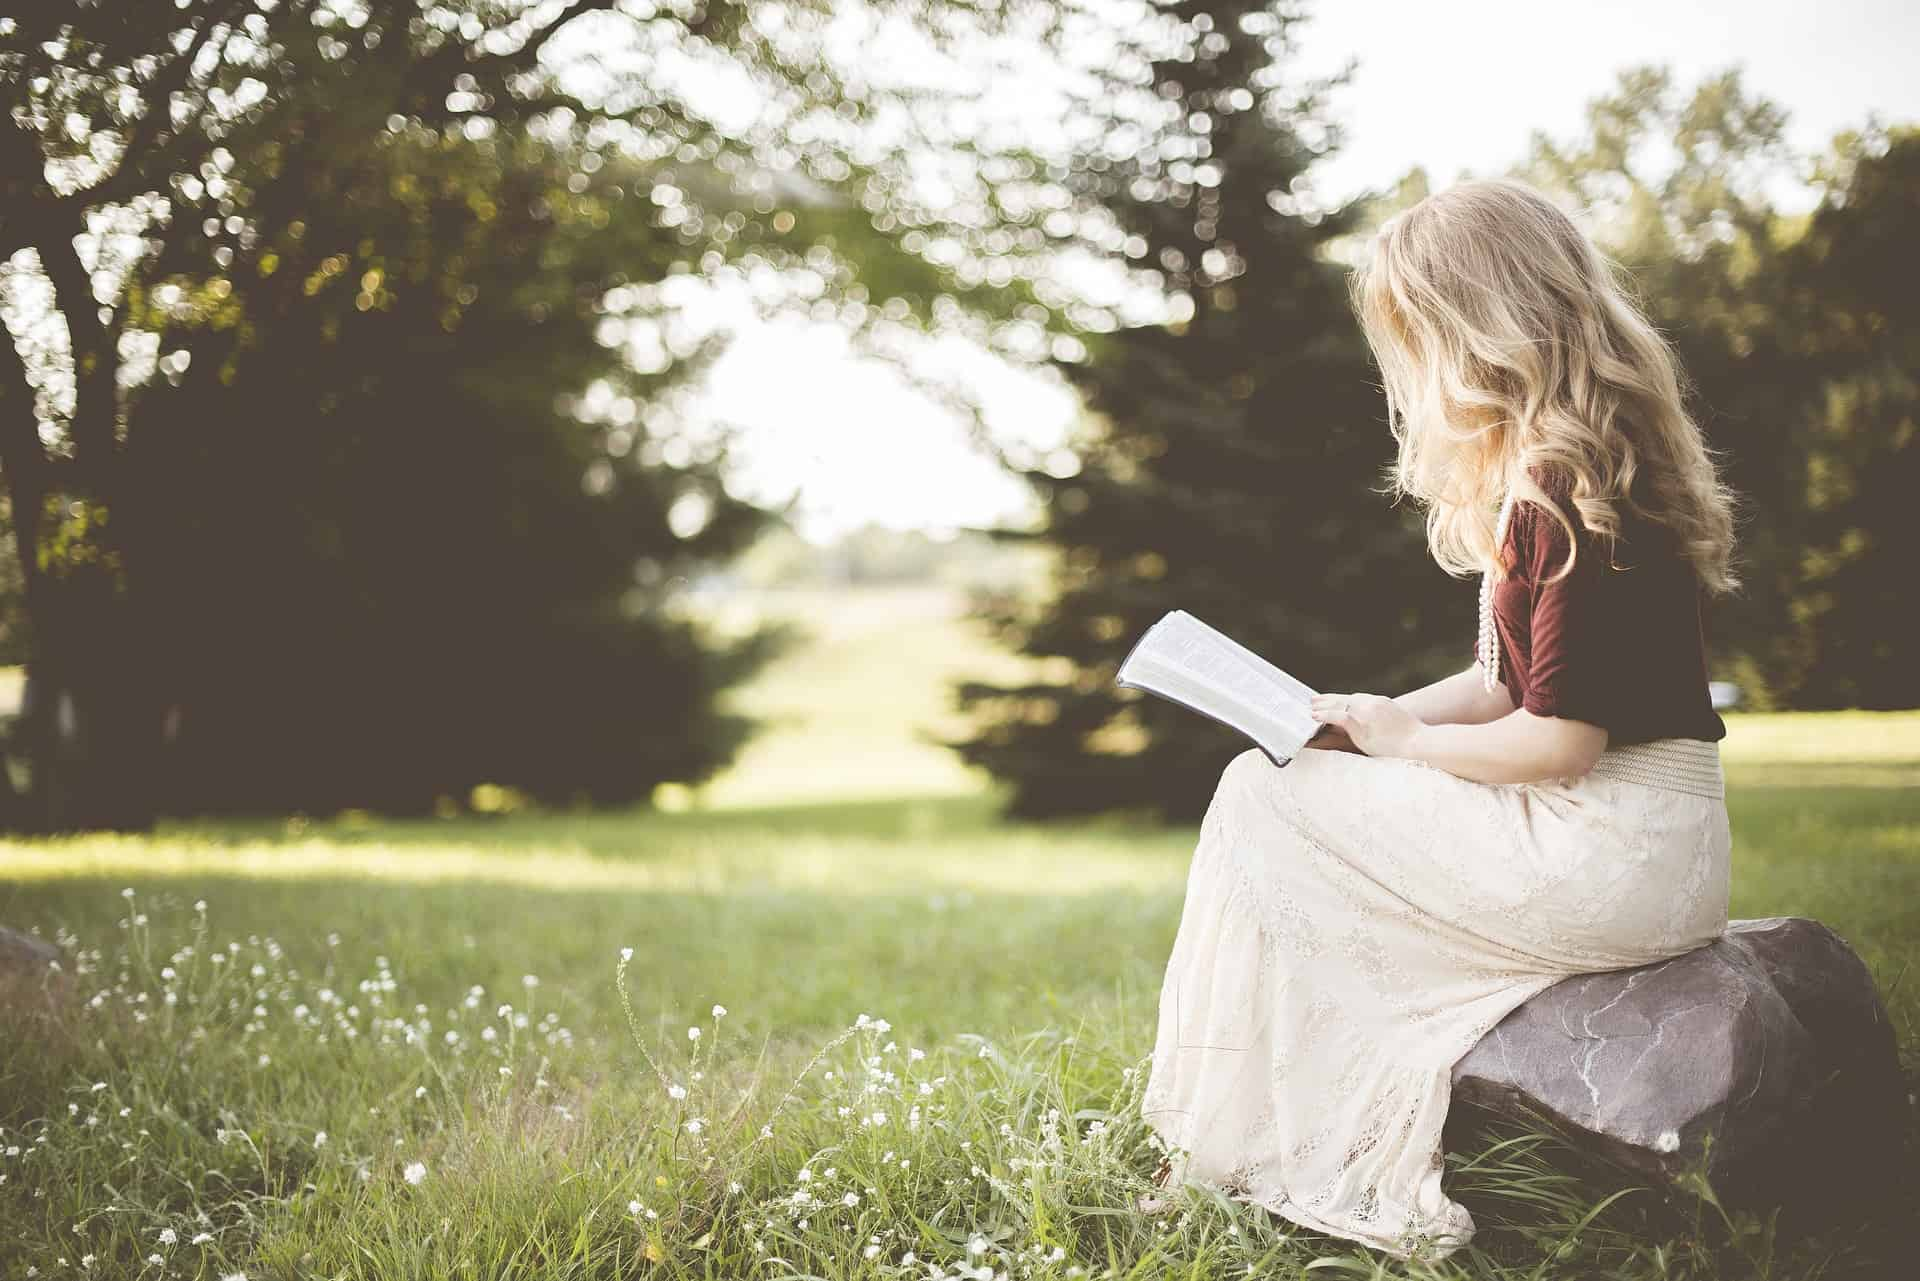 Psychological Books: The Top Ones You Must Read